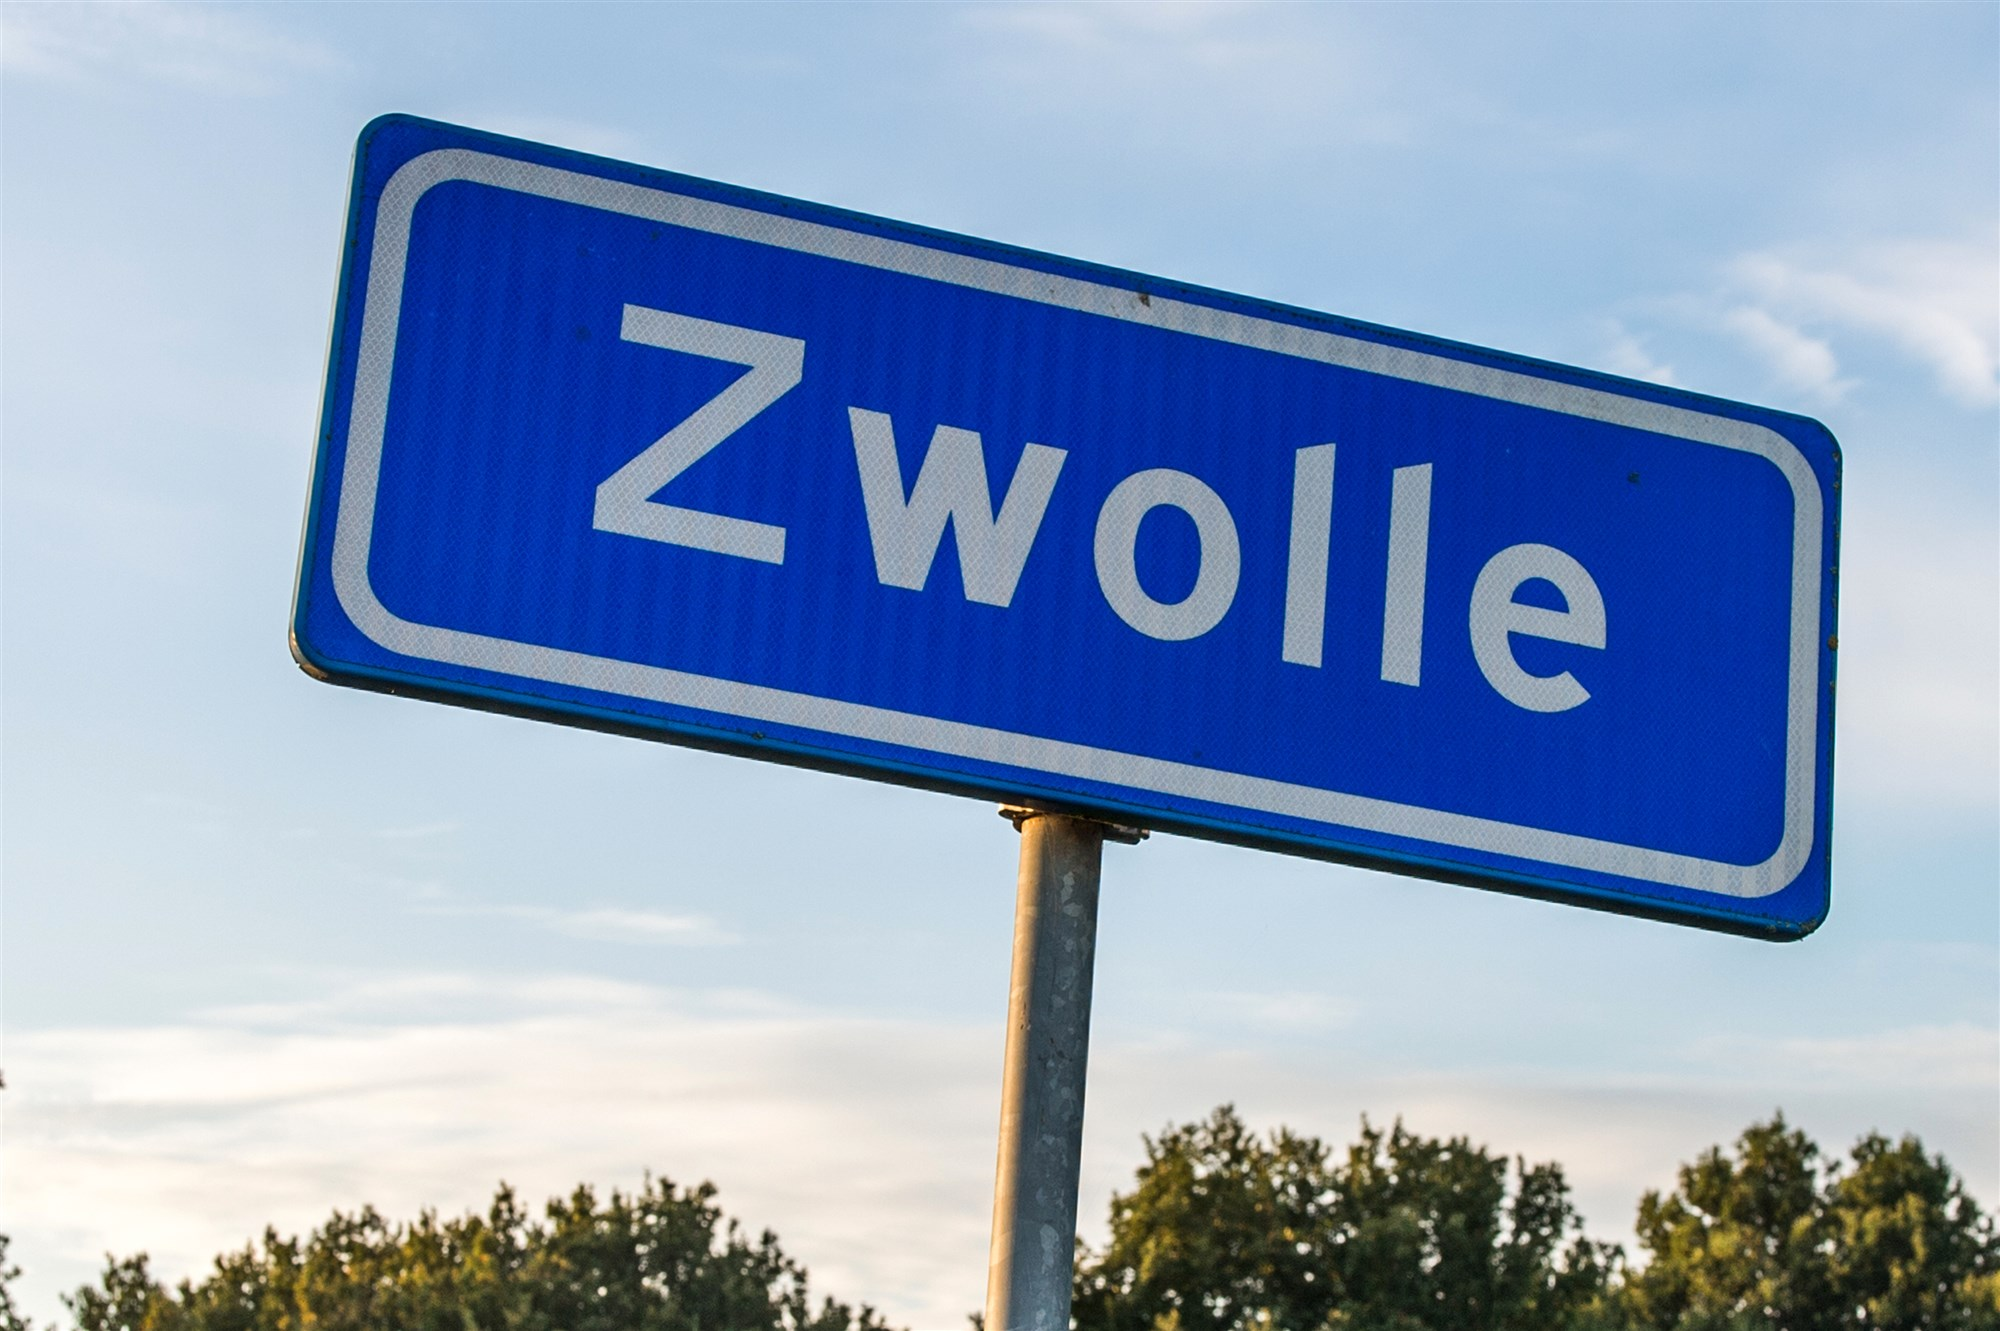 Zwolle Olle